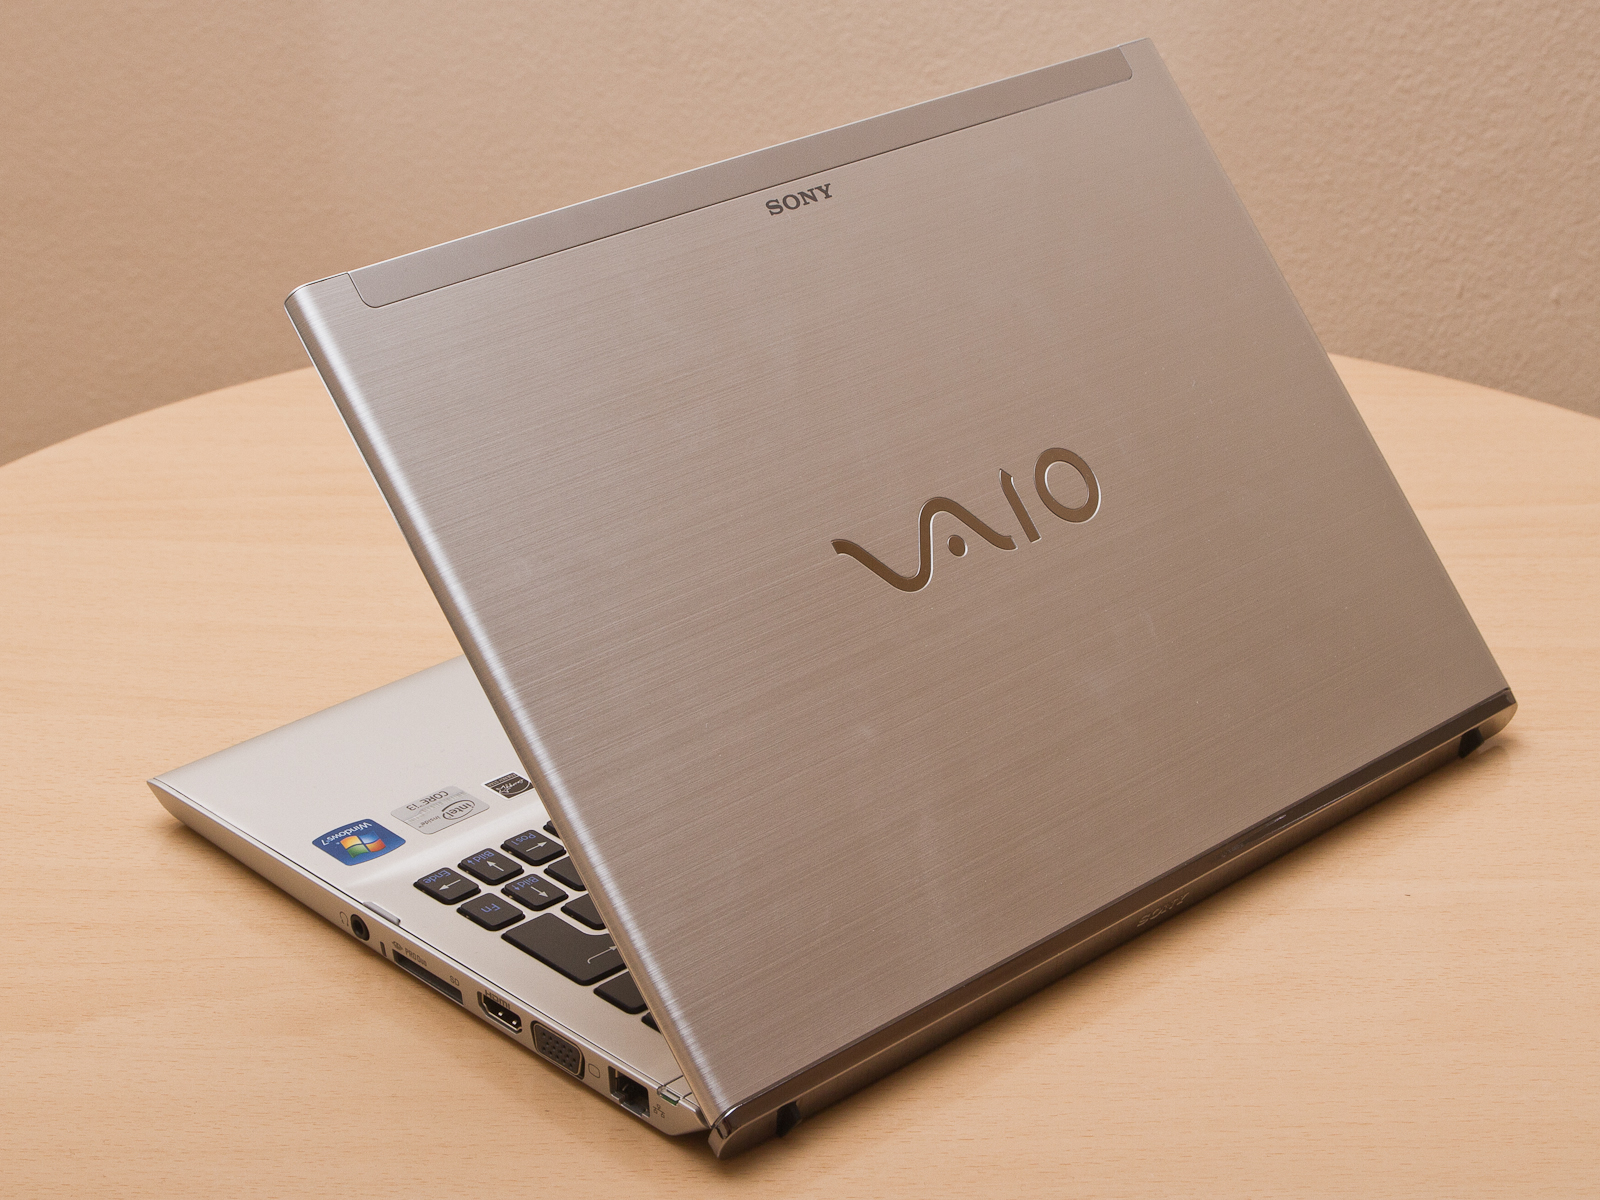 Sony vaio t13 ultrabook review the register - In Review Sony Vaio Svt1311m1es